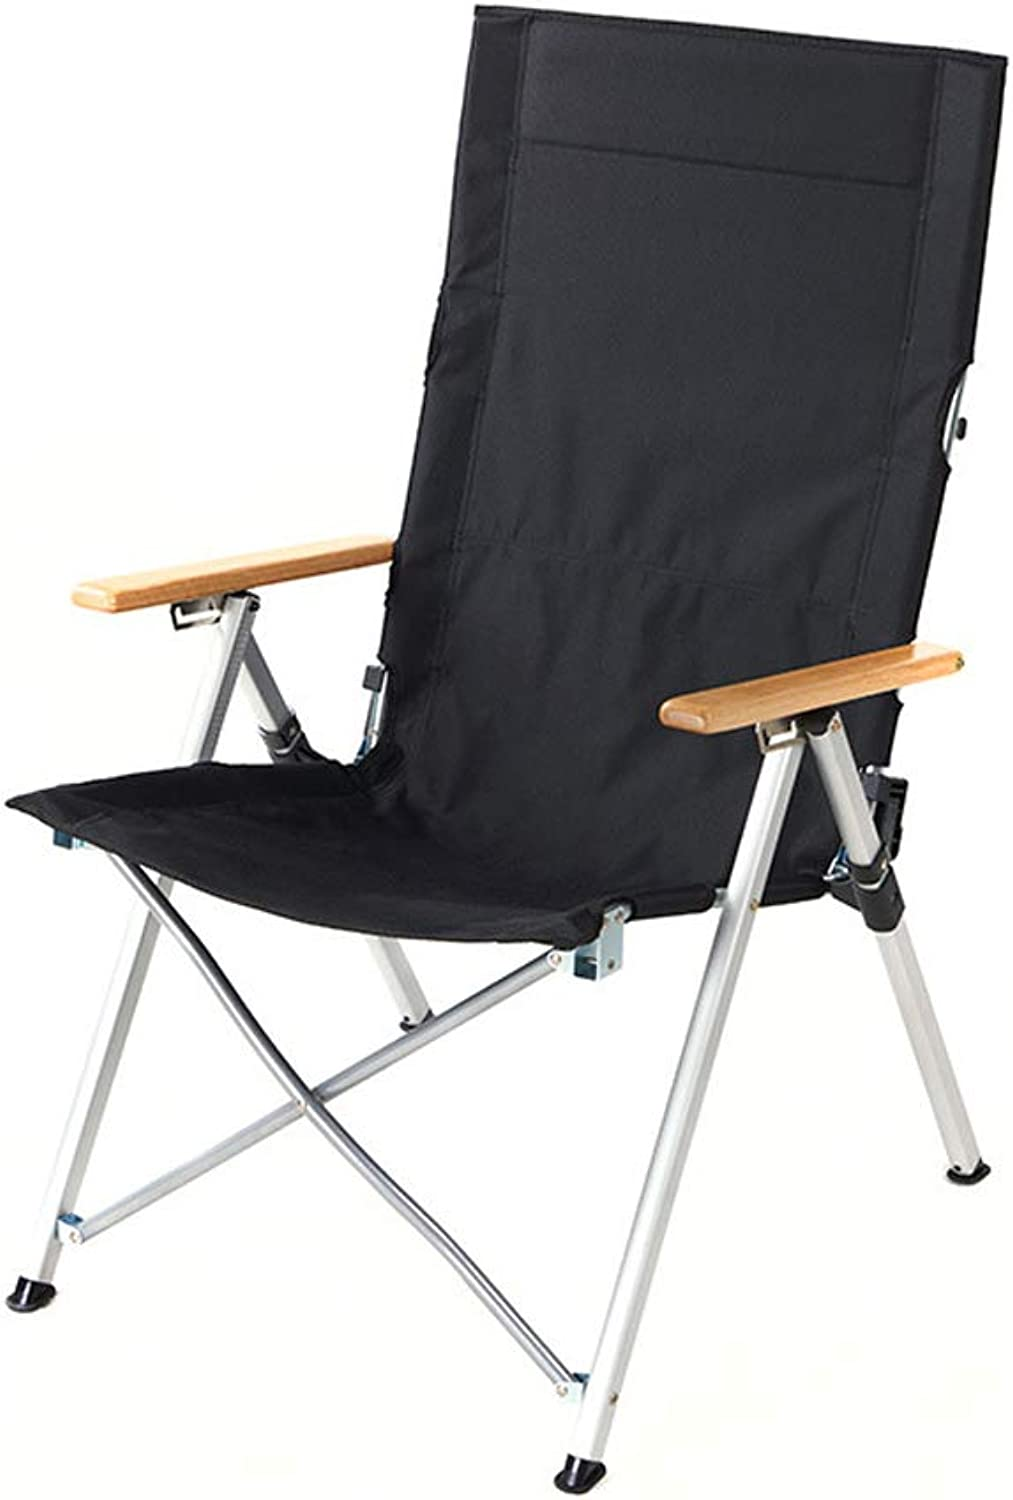 Outdoor Portable Aluminum Folding Chair Portable Recliner Fishing Sketch Chair Leisure Camping Beach ChairBlack